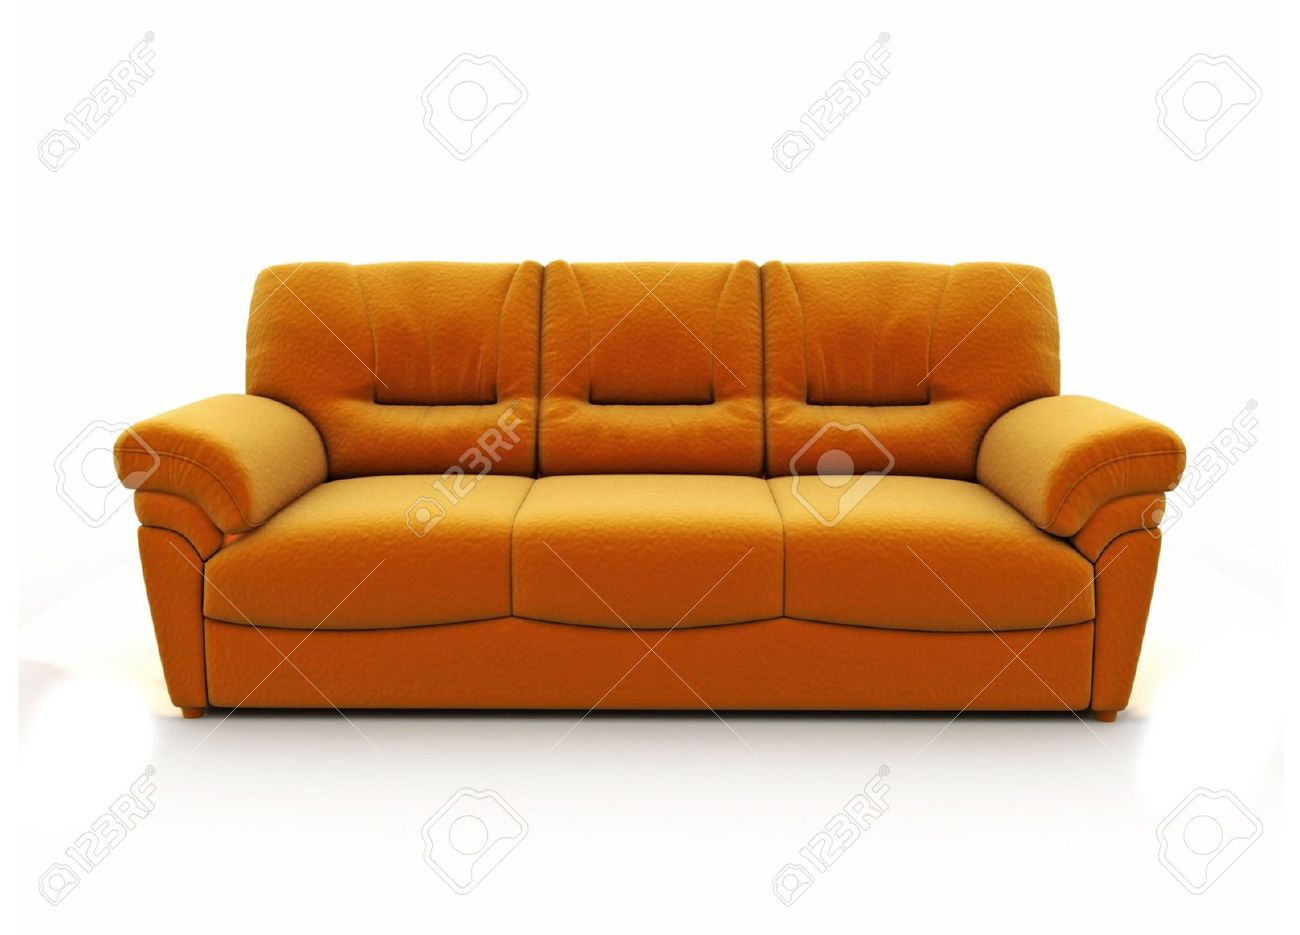 Nice Sofa Interior Design